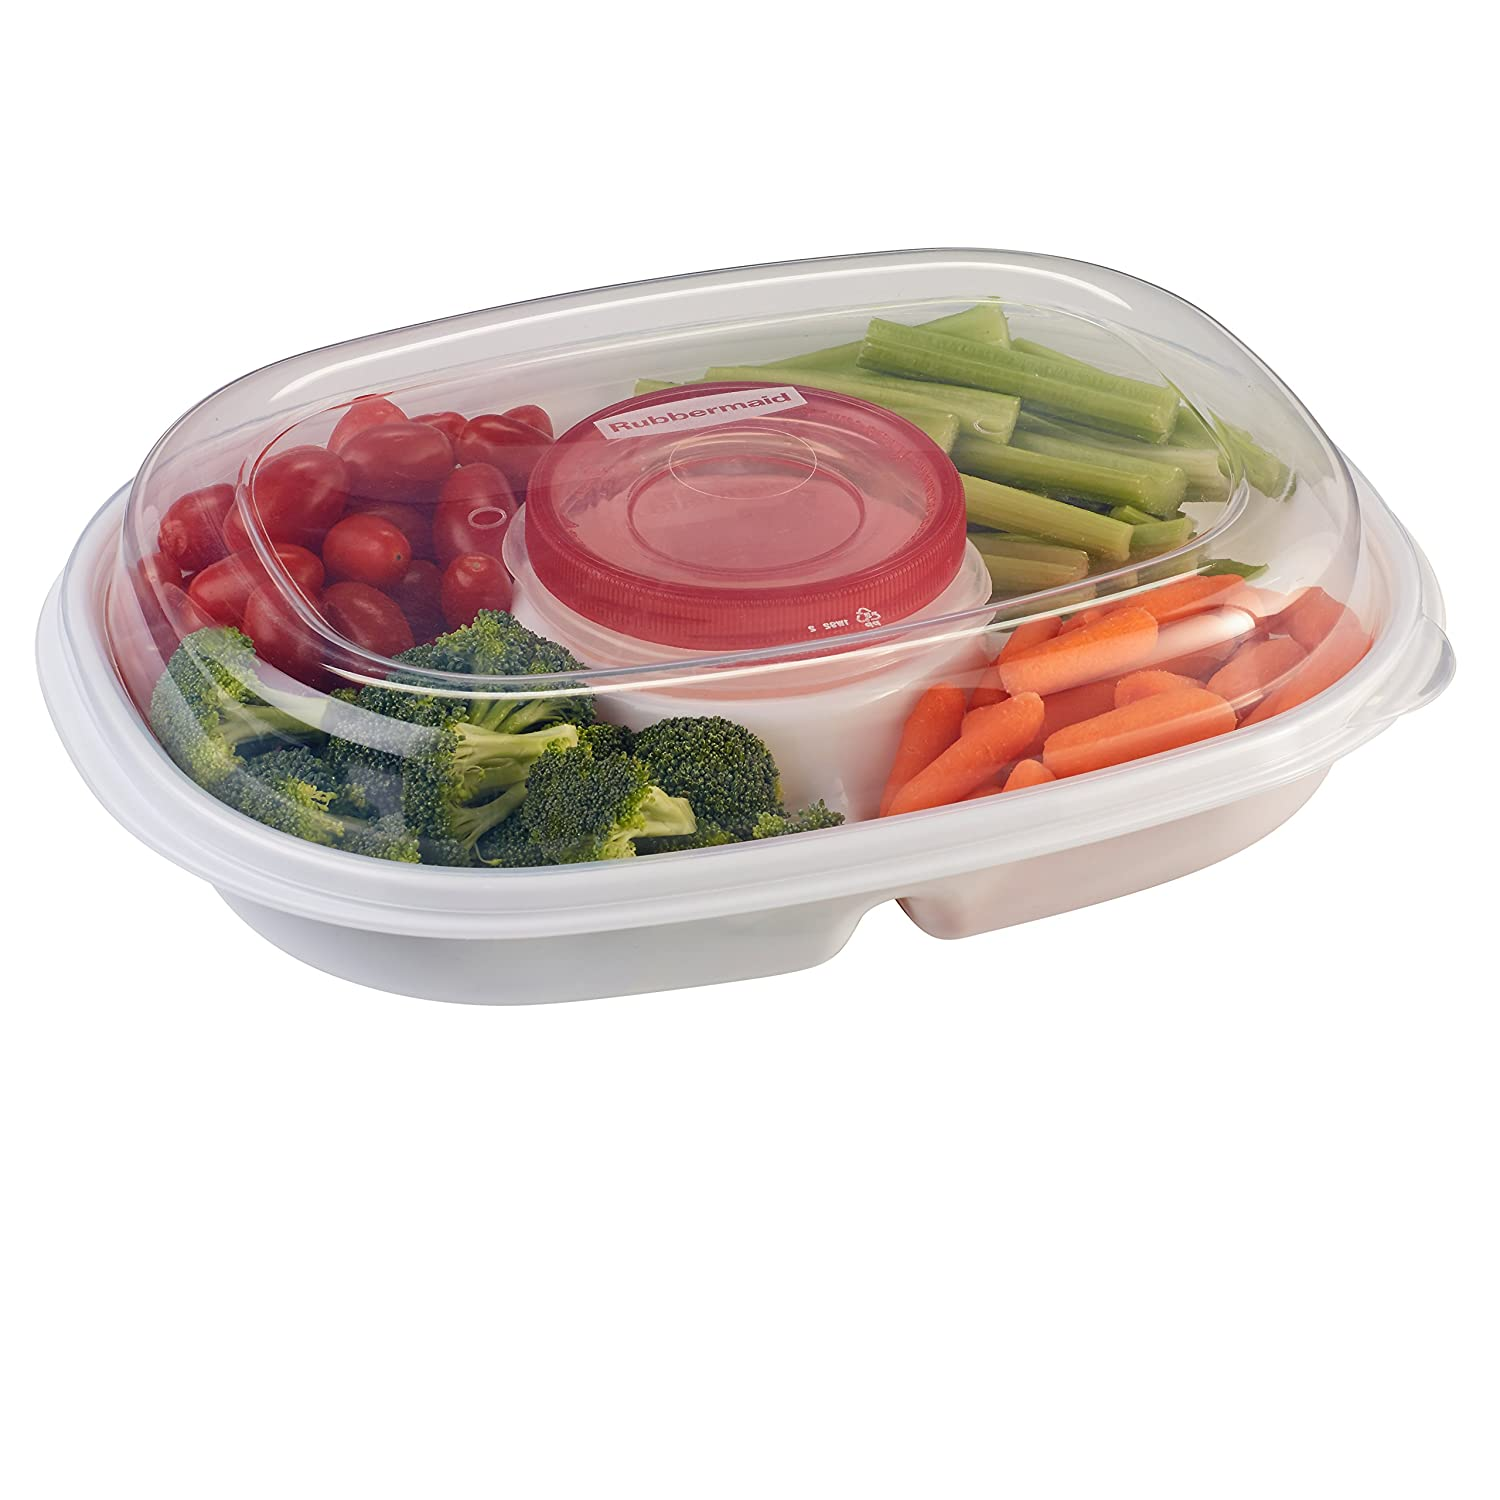 Rubbermaid Specialty Bread Keeper Food Storage Container , Red 1777190 RUBBERMAID INC